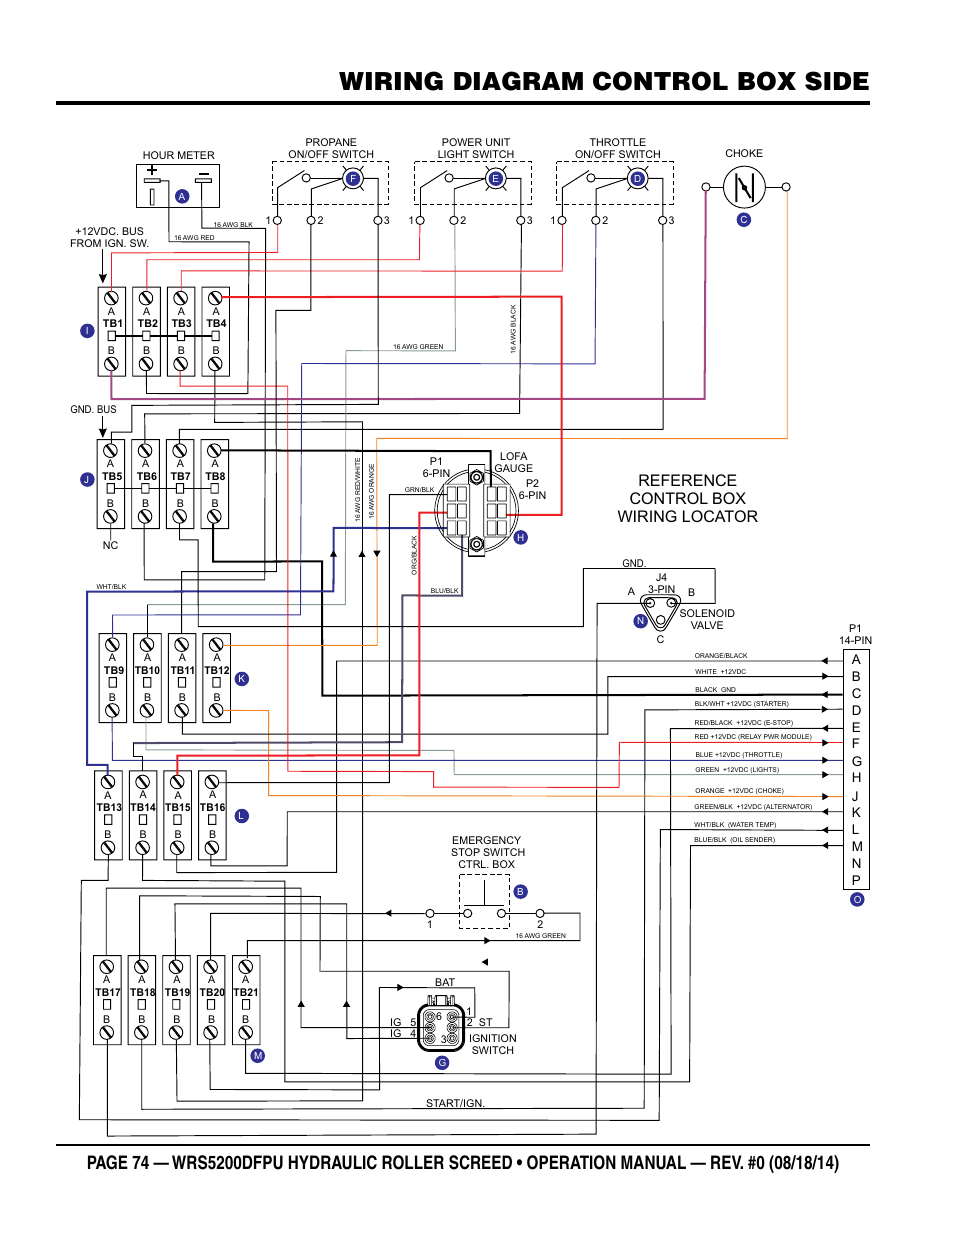 hight resolution of 14 pin wire diagram kubota all kind of wiring diagrams u2022 cummins wiring diagrams kubota